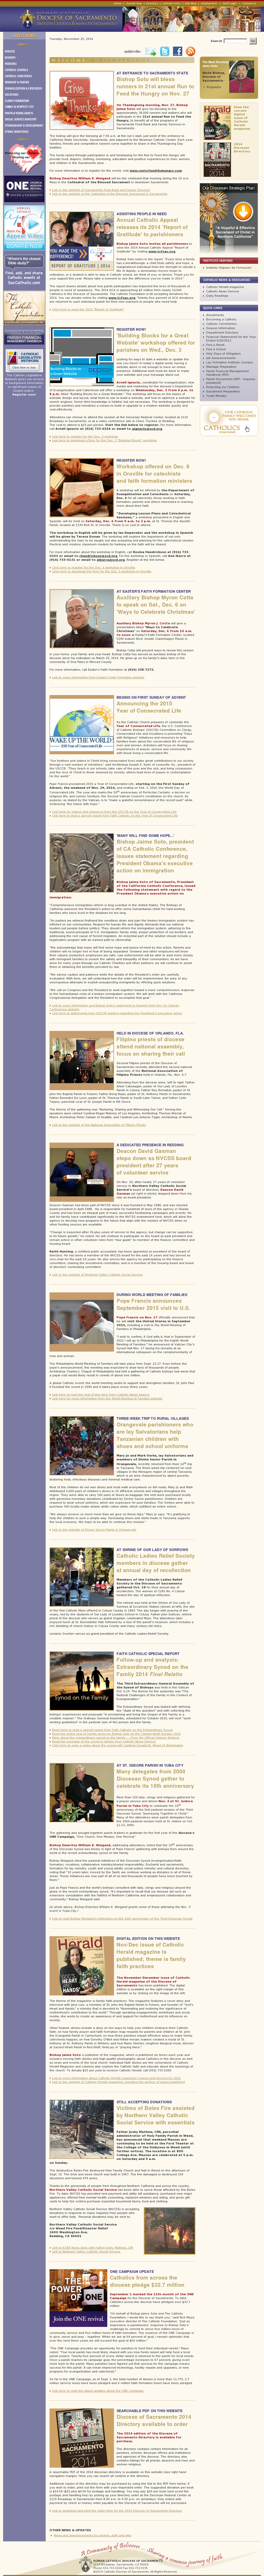 Diocese Sacramento Competitors, Revenue and Employees